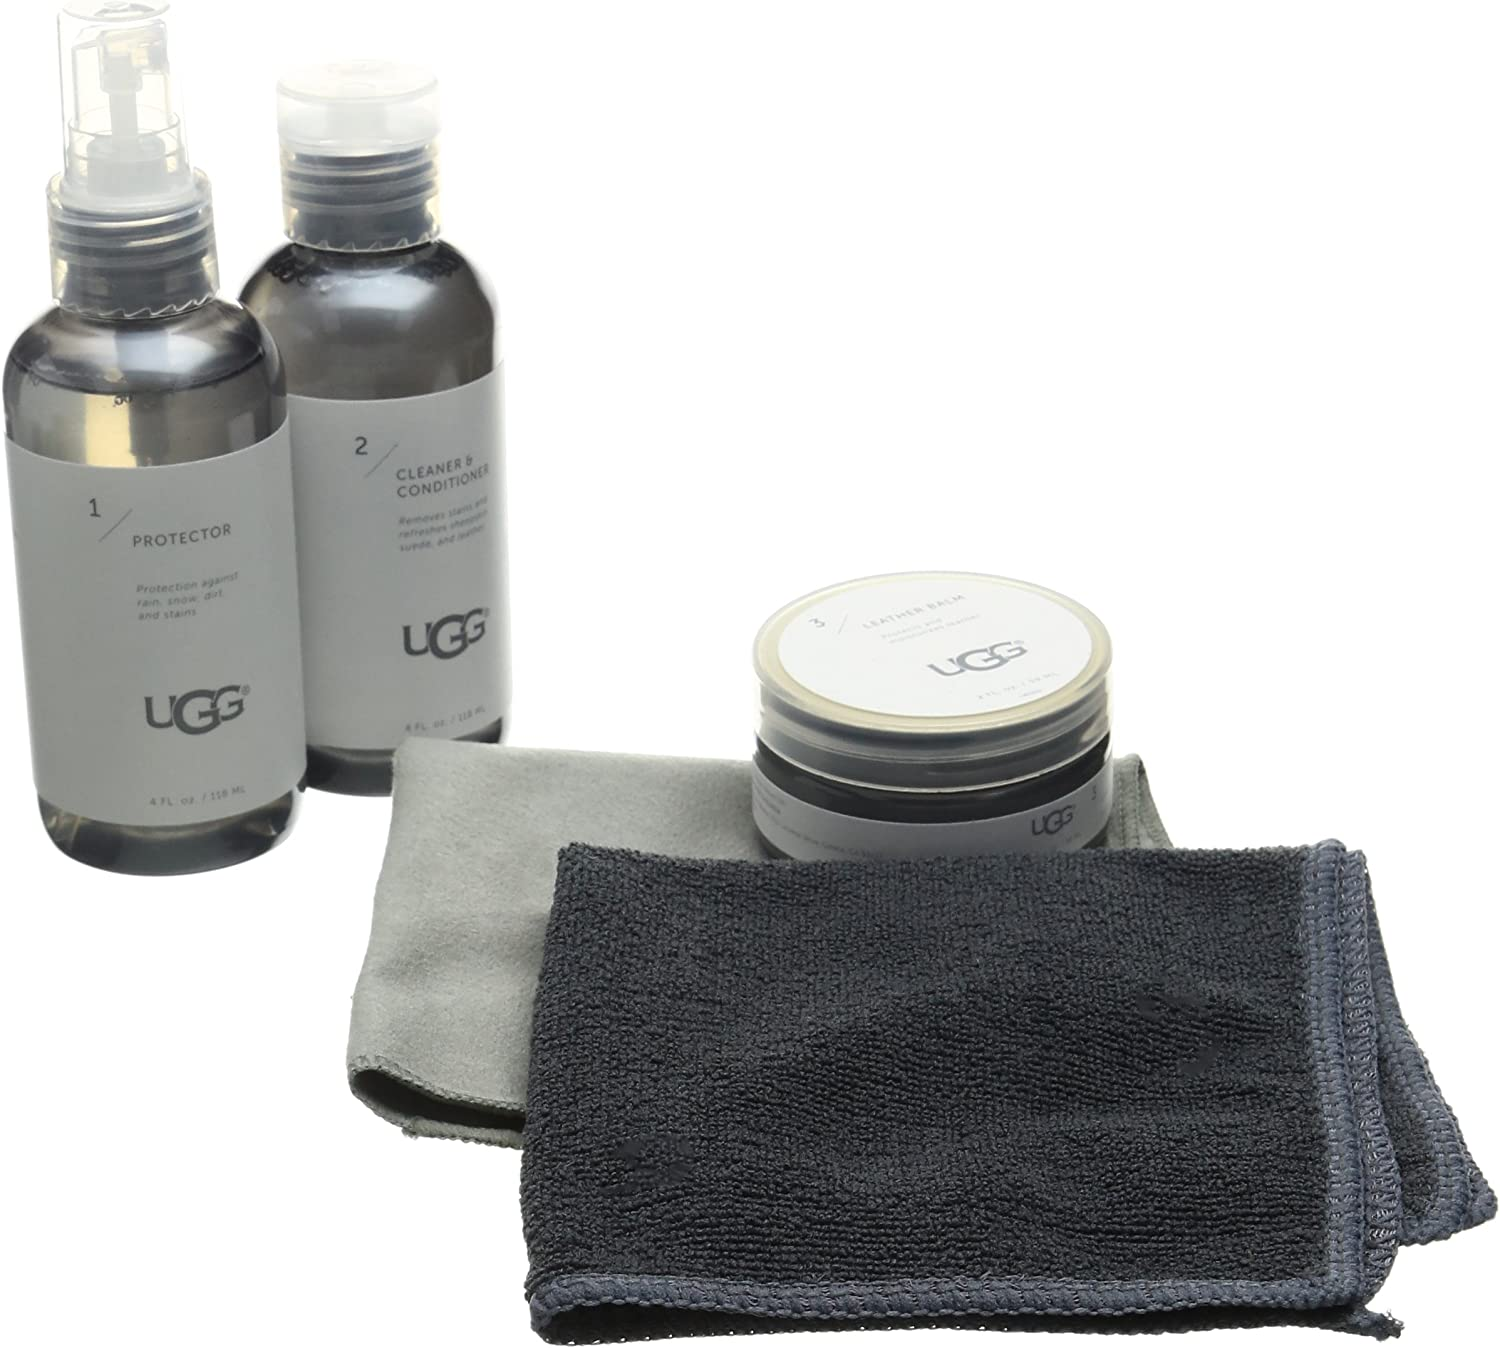 UGG Leather Shoe Care Kit, Natural, One Size fits All Medium US: Shoes